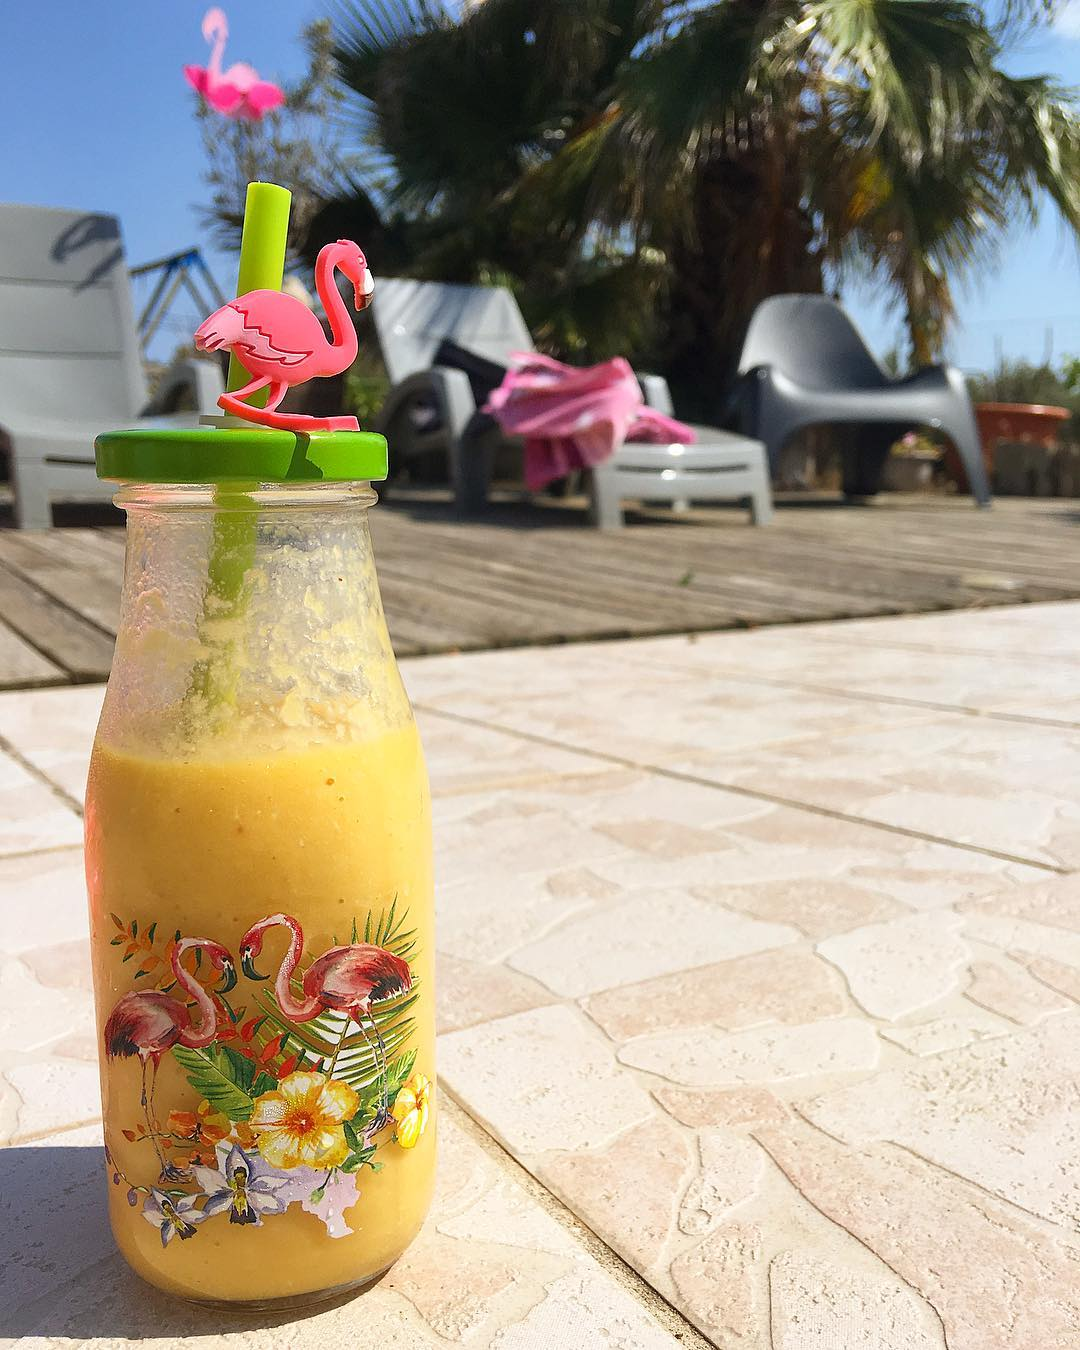 ... on va le prendre tranquille... SMOOTHIE Mango-Coco-Ananas ?? .  ____________ #smoothie #flamingo #montpellier #pintademontpellier #marseillan #marseillanplage #sunnyday #friends